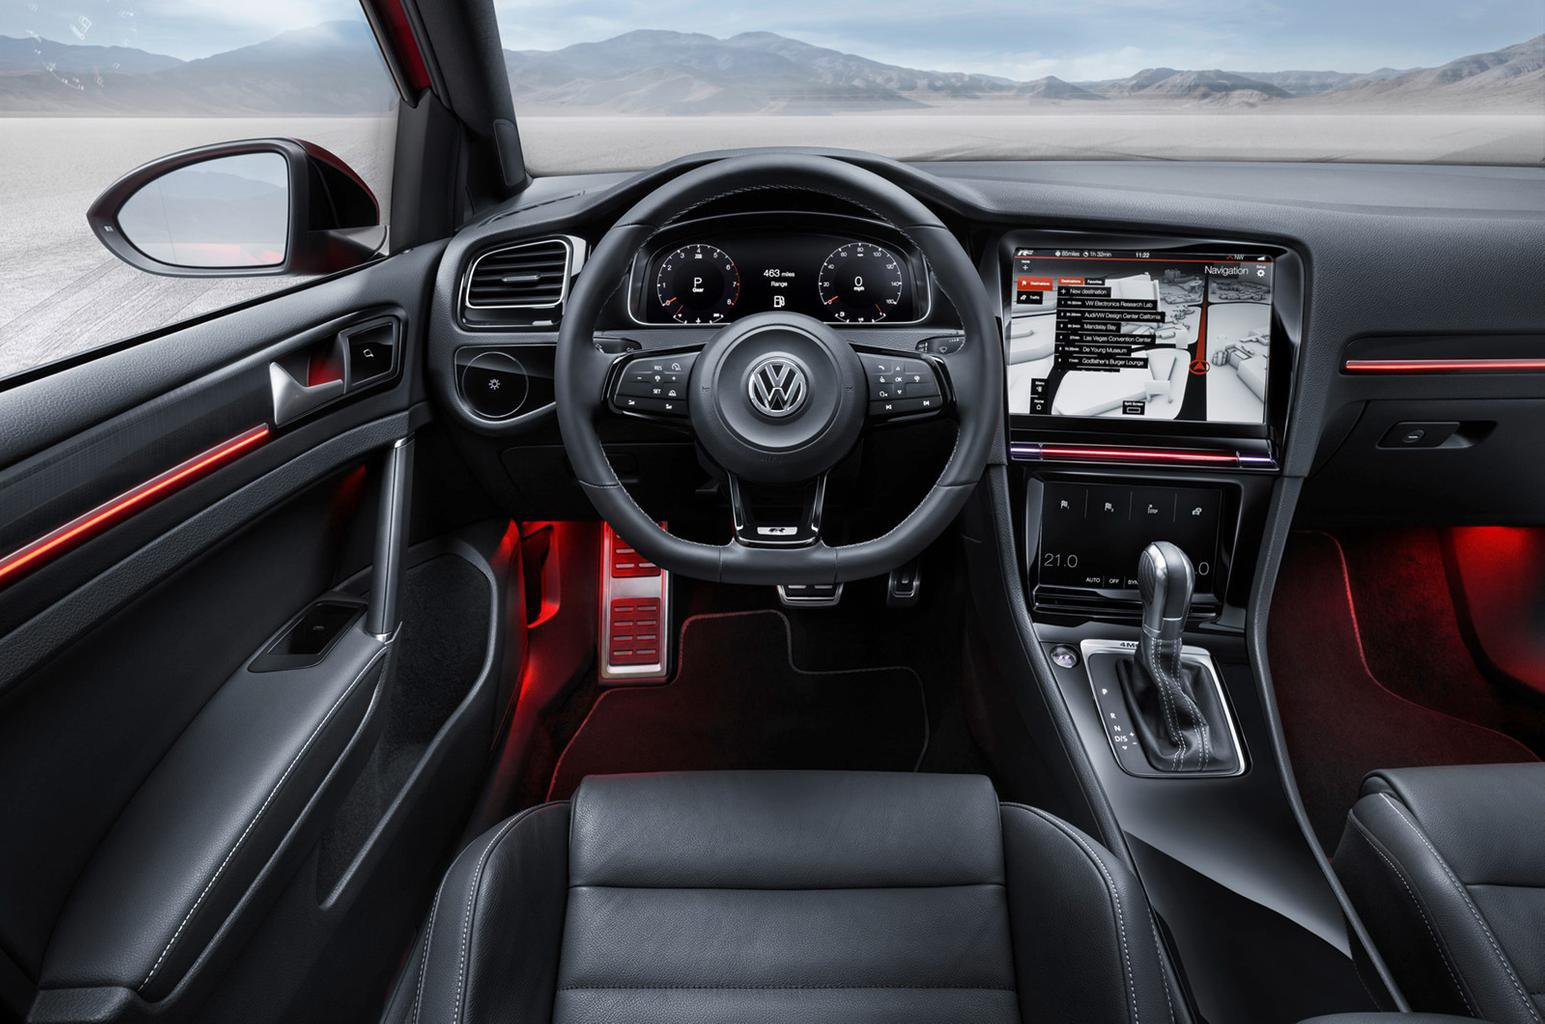 VW shows off possible future dashboard tech